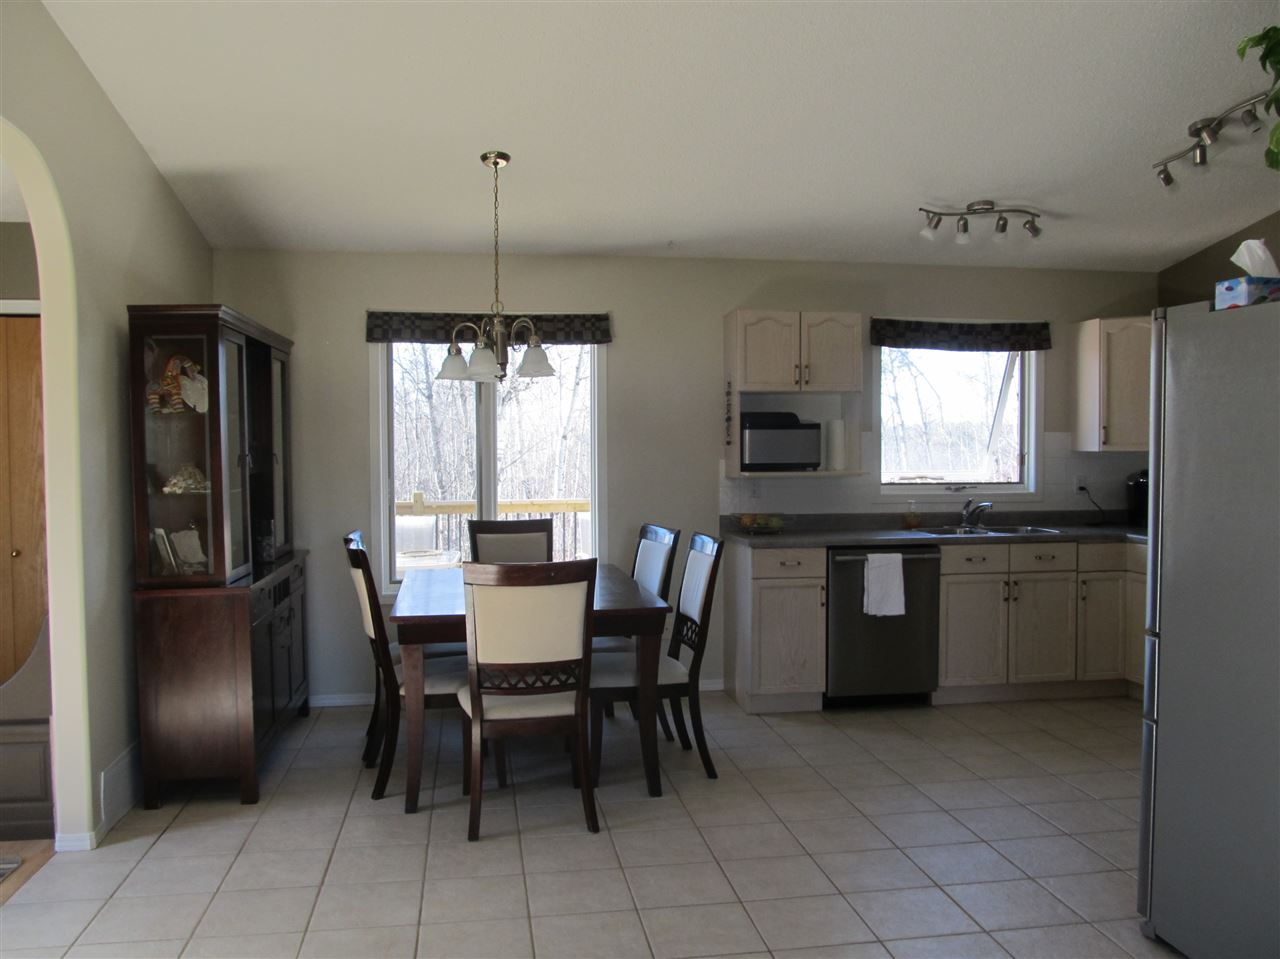 Photo 7: 57016 RR 233: Rural Sturgeon County House for sale : MLS(r) # E4057531